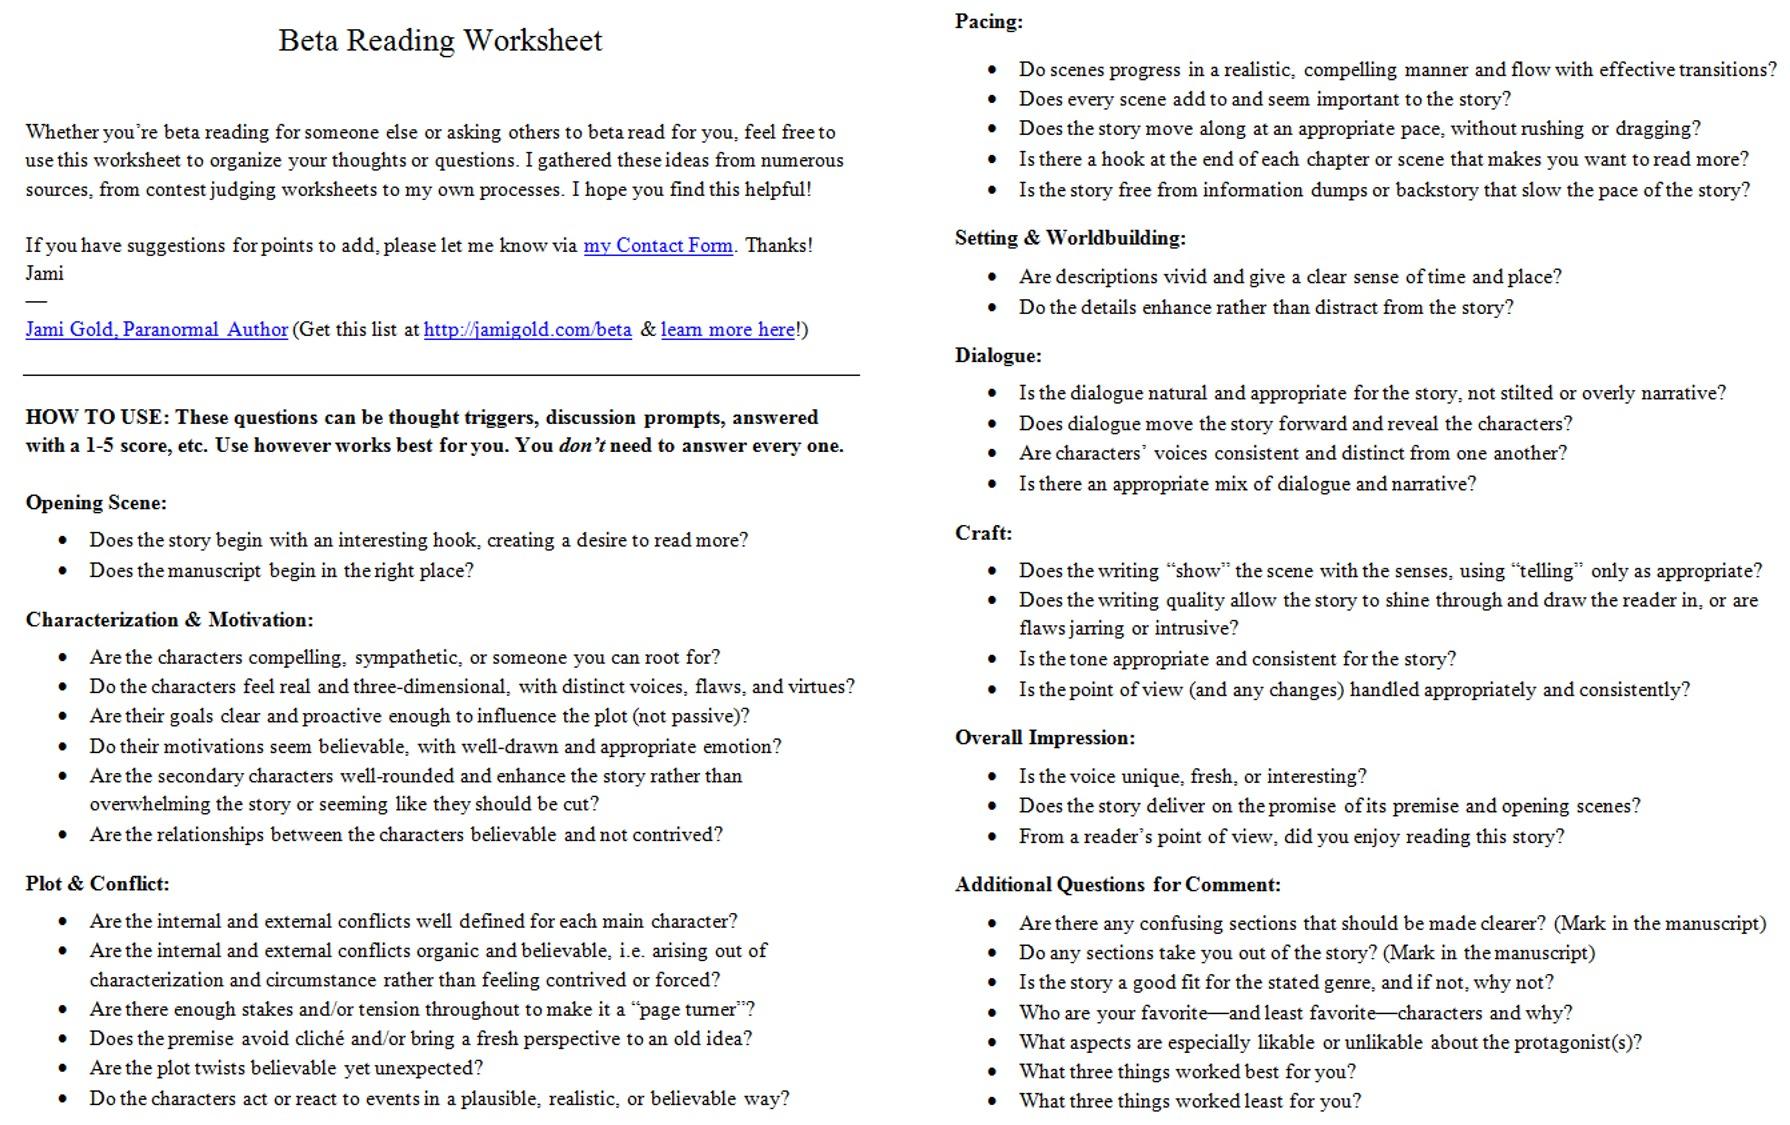 Aldiablosus  Outstanding Worksheets For Writers  Jami Gold Paranormal Author With Handsome Screen Shot Of The Twopage Beta Reading Worksheet With Astounding Volume Of Triangular Pyramid Worksheet Also Beginning Geometry Worksheets In Addition Minister Housing Allowance Worksheet And Solving Equations By Graphing Worksheet As Well As Predicting The Weather Worksheet Additionally Common Core Free Worksheets From Jamigoldcom With Aldiablosus  Handsome Worksheets For Writers  Jami Gold Paranormal Author With Astounding Screen Shot Of The Twopage Beta Reading Worksheet And Outstanding Volume Of Triangular Pyramid Worksheet Also Beginning Geometry Worksheets In Addition Minister Housing Allowance Worksheet From Jamigoldcom